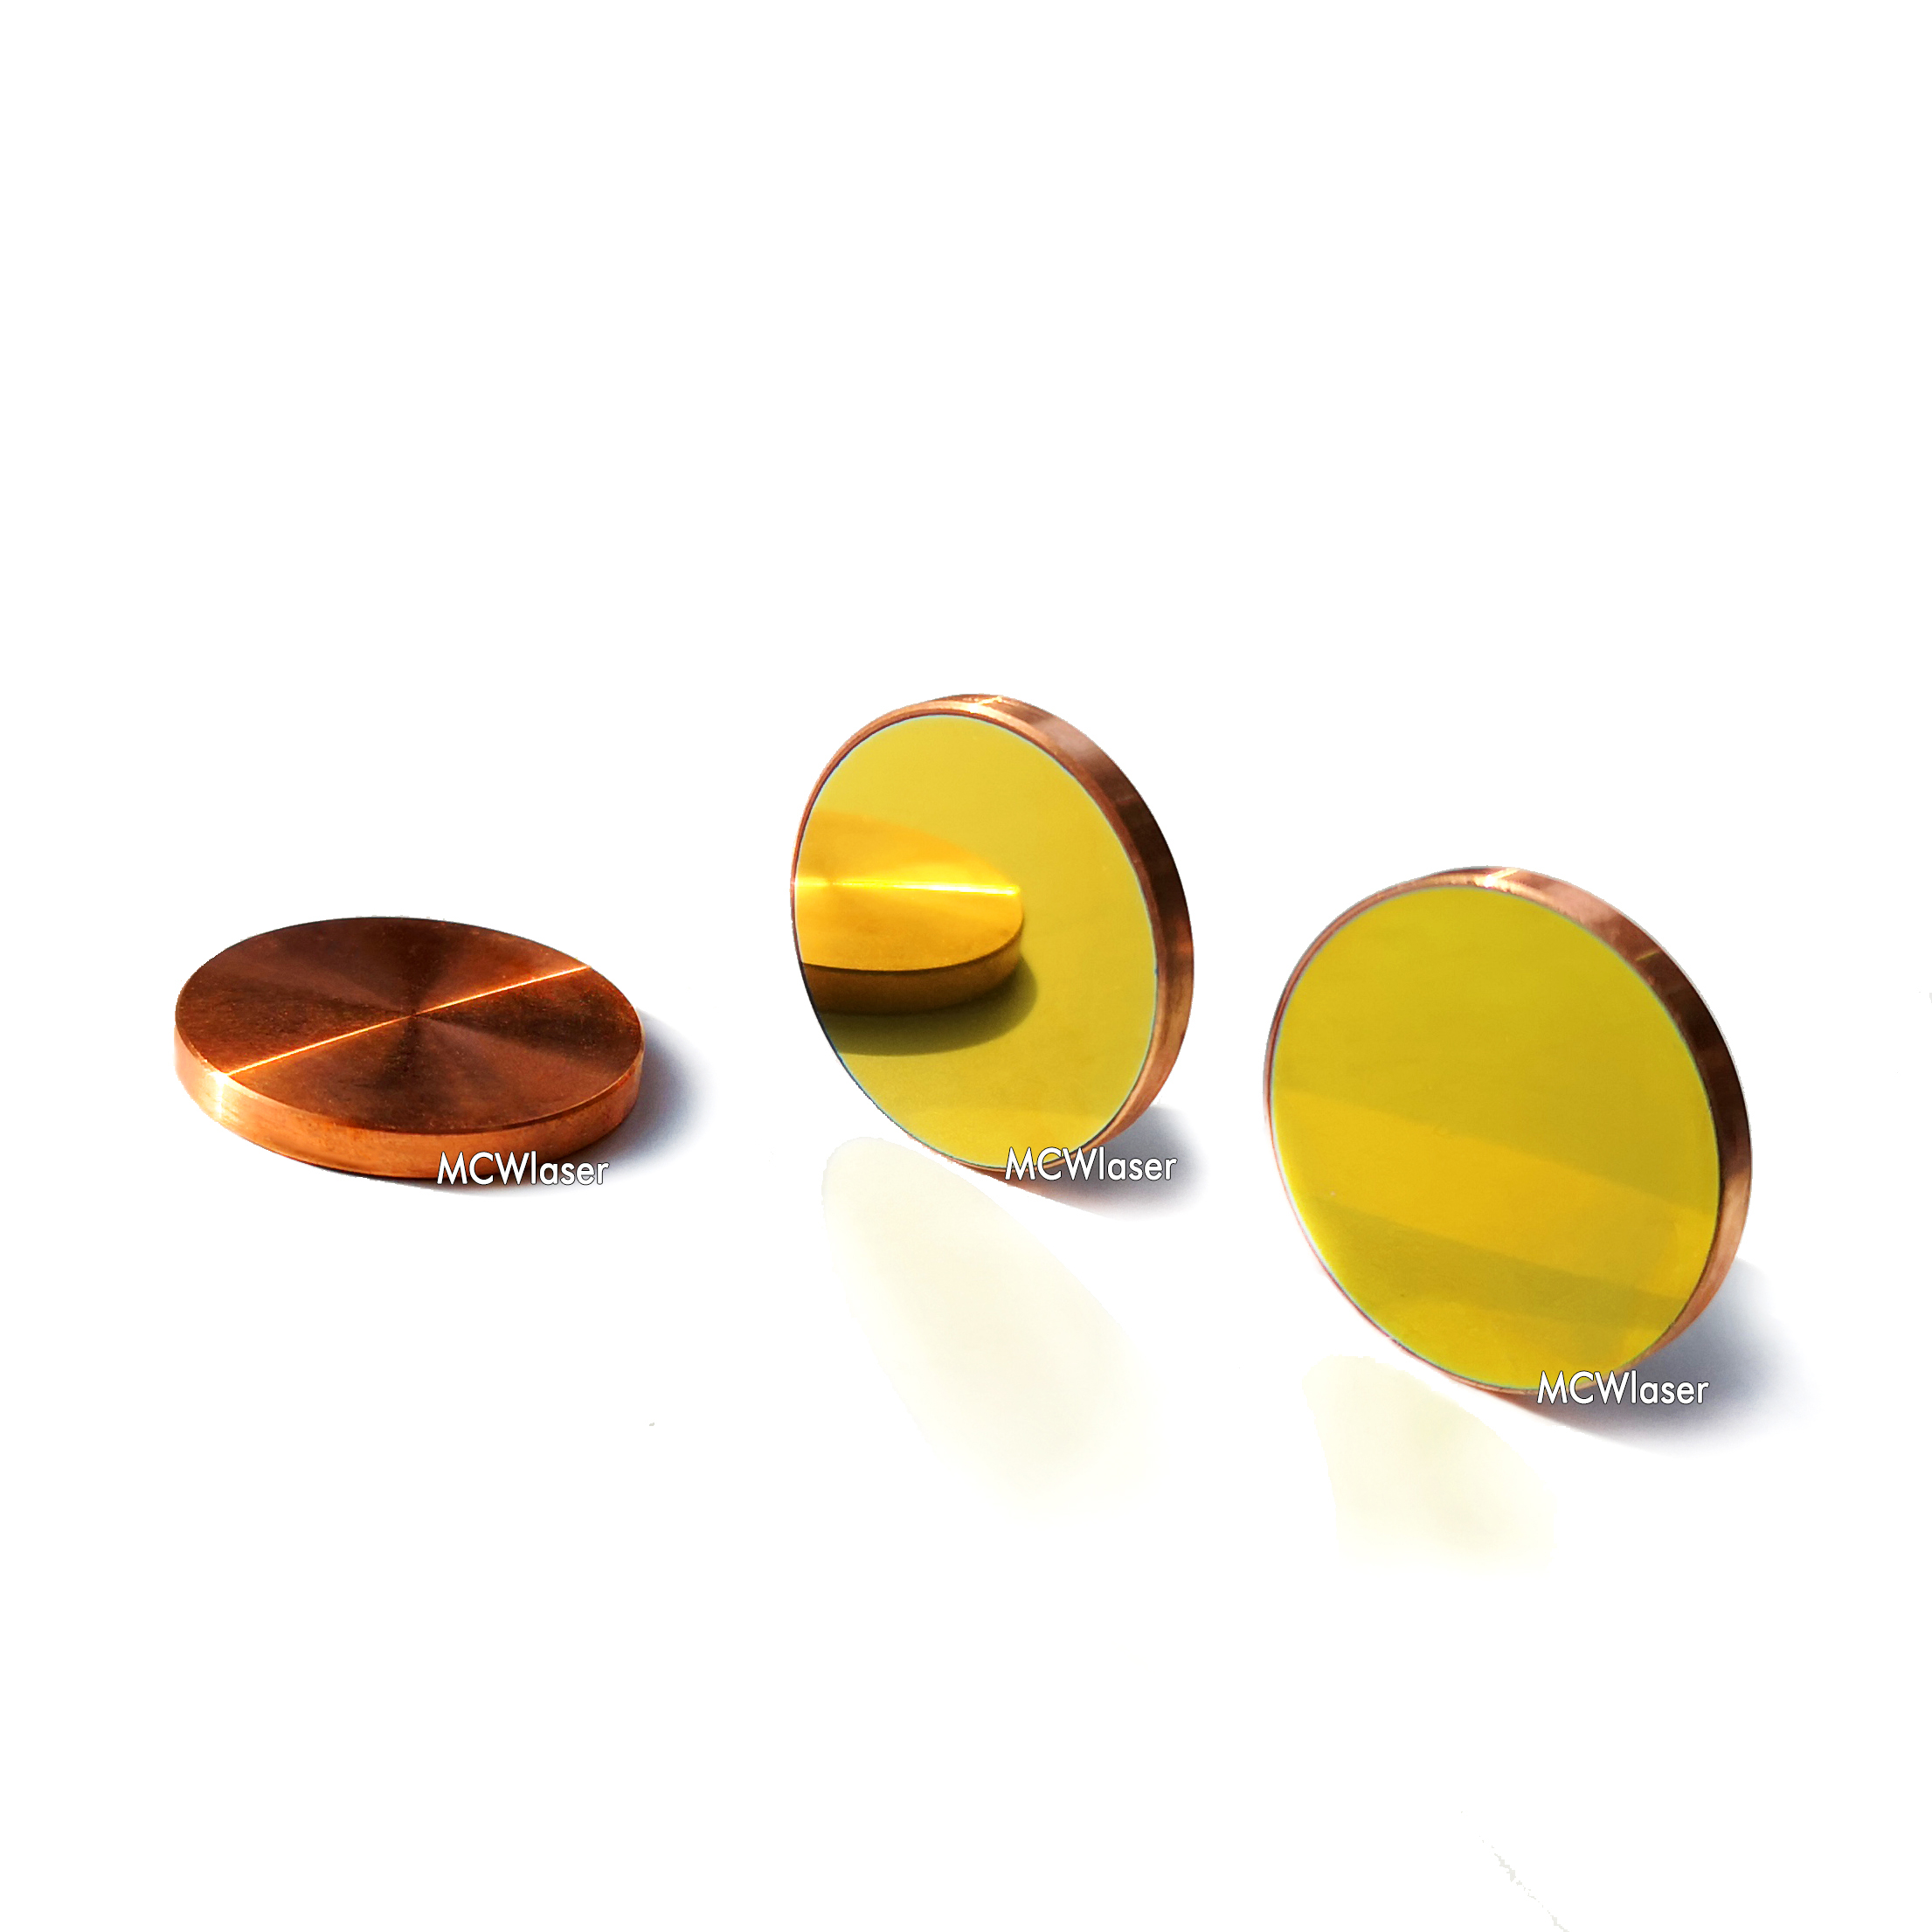 Gold Coated Φ30mm Si Laser Mirror Reflector for 10600nm 10.6um CO2 Engraver